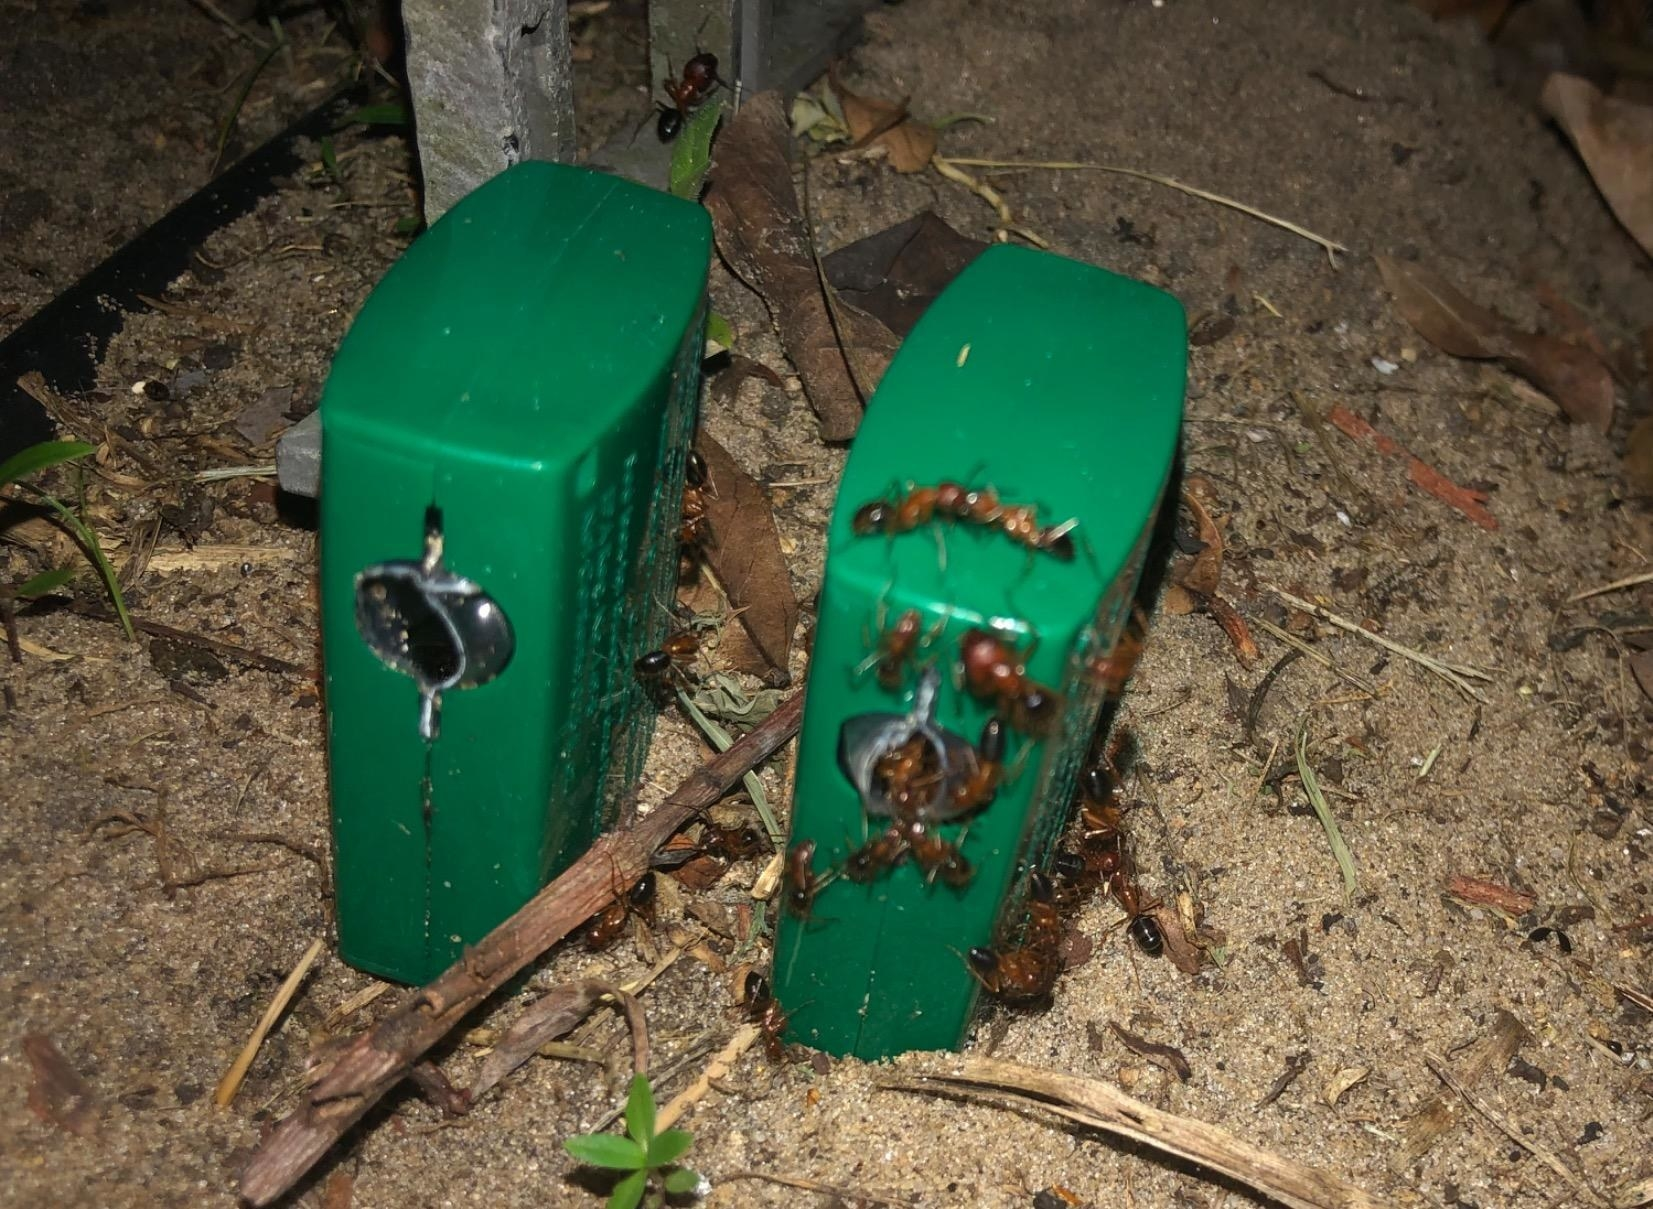 Reviewer photo of the bait traps covered in ants